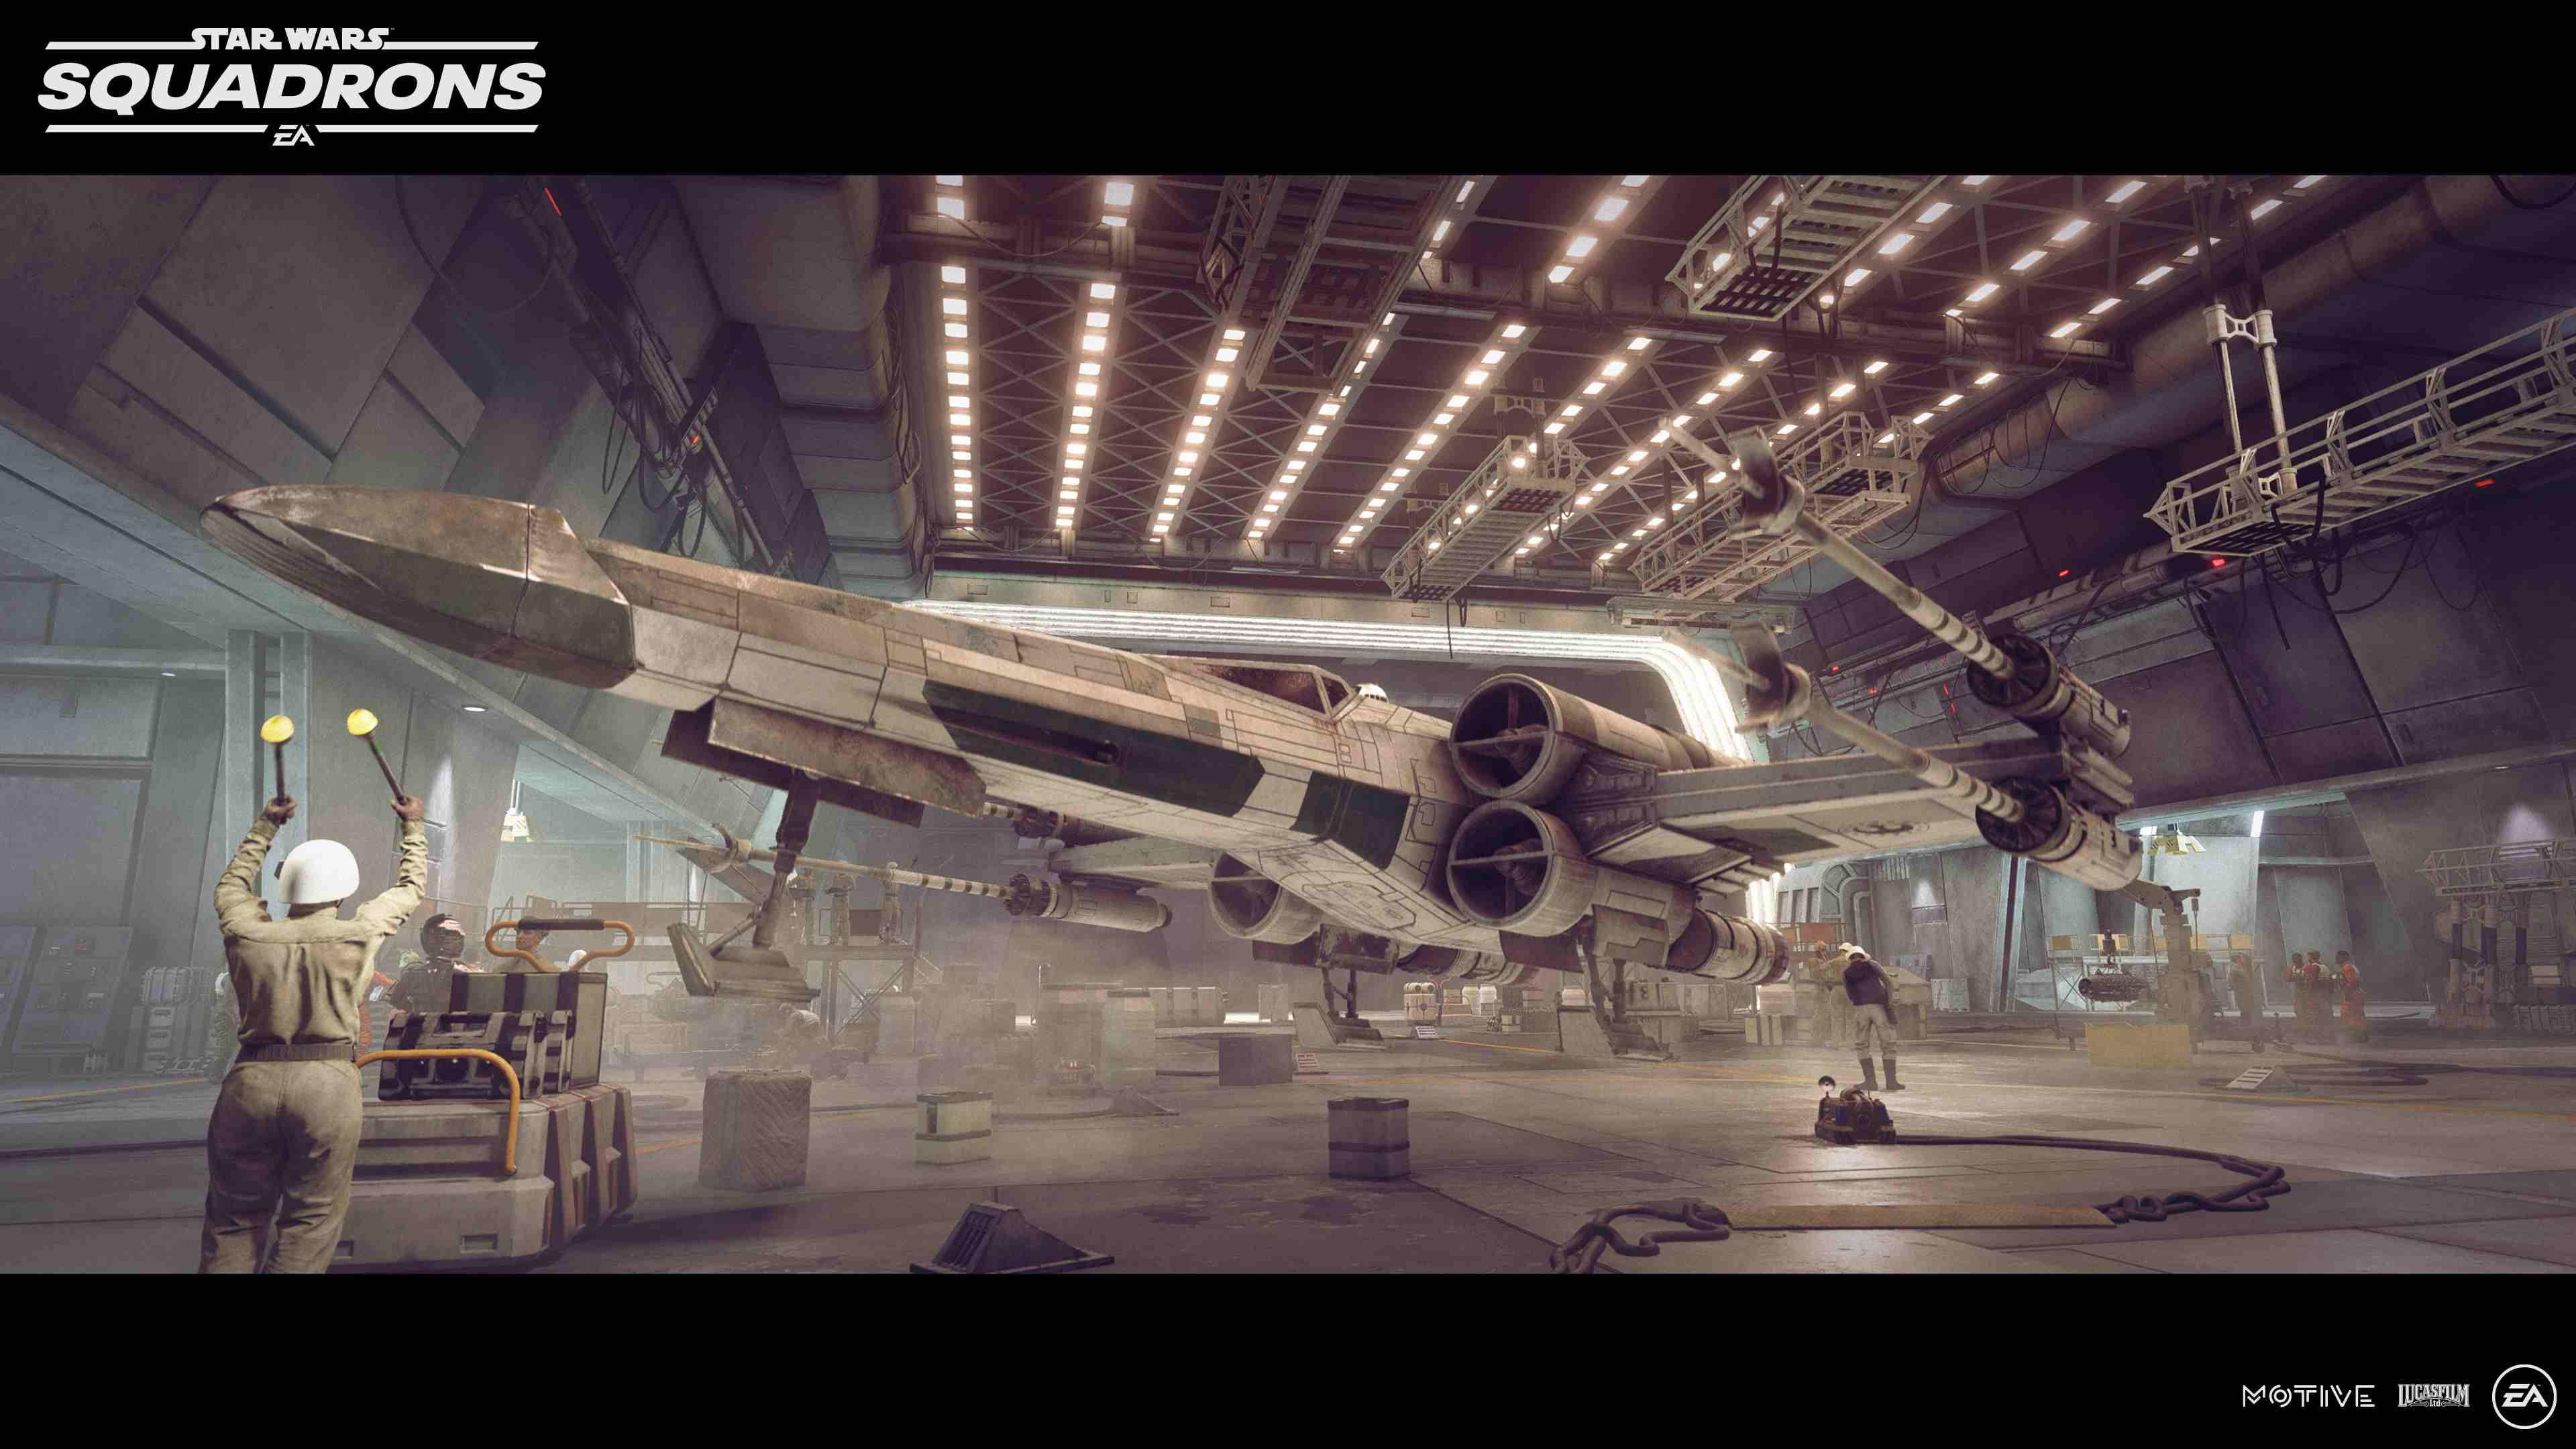 Starwars SCREENS GAME XWING HANGAR in artikel